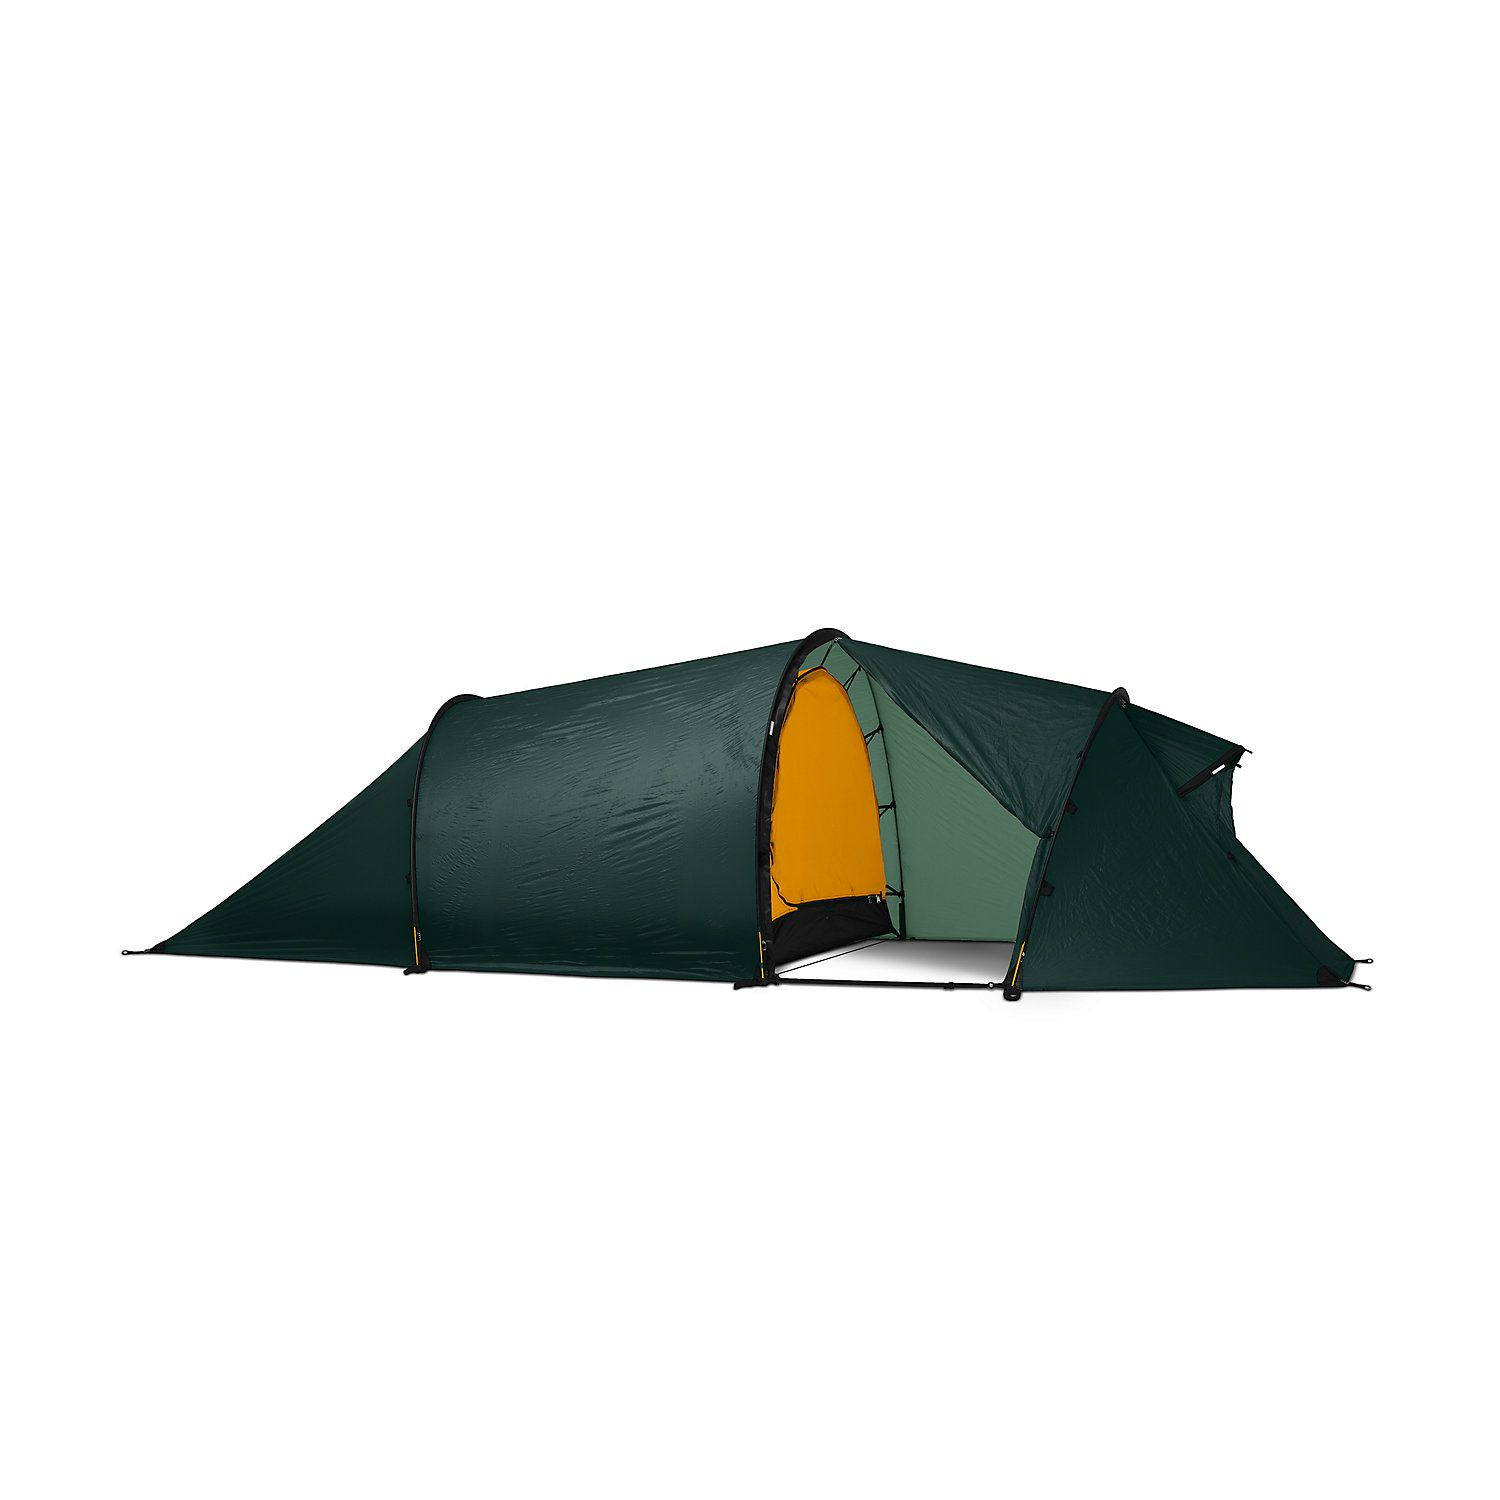 brand new 881bc b0ecd The 8 Best Two-Person Tents of 2019